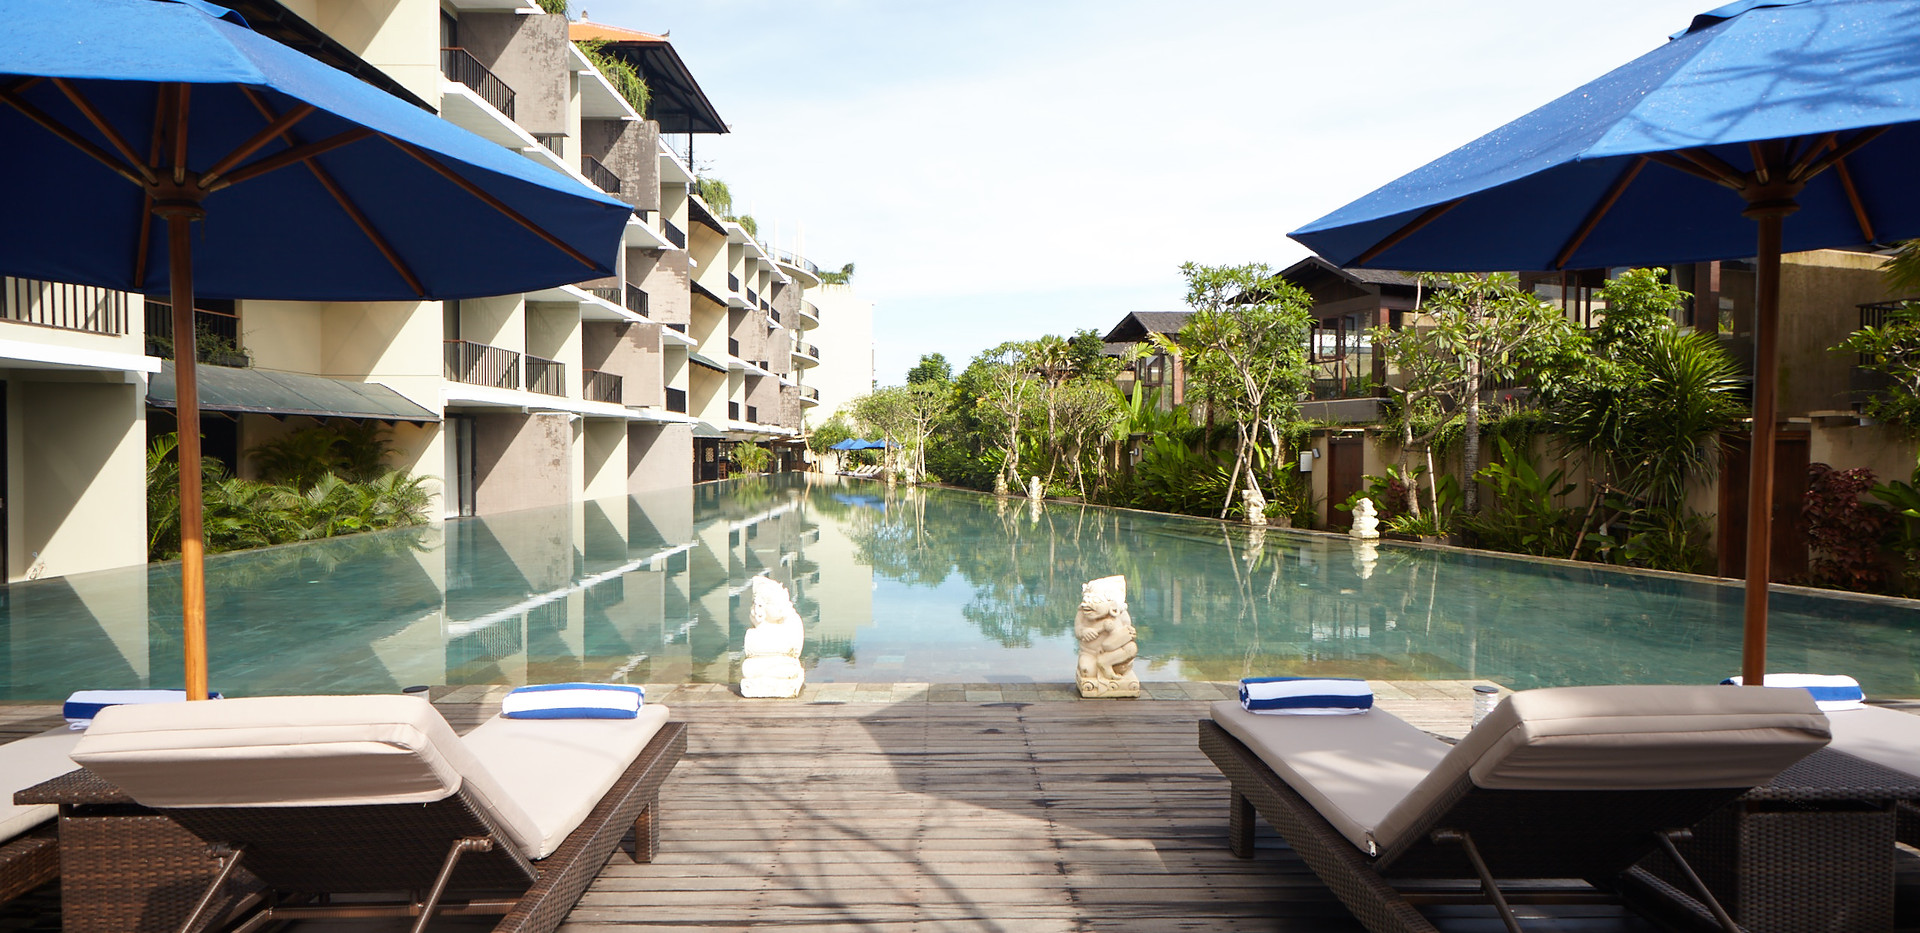 Swimming Pool - Wyndham Dreamland Resort Bali